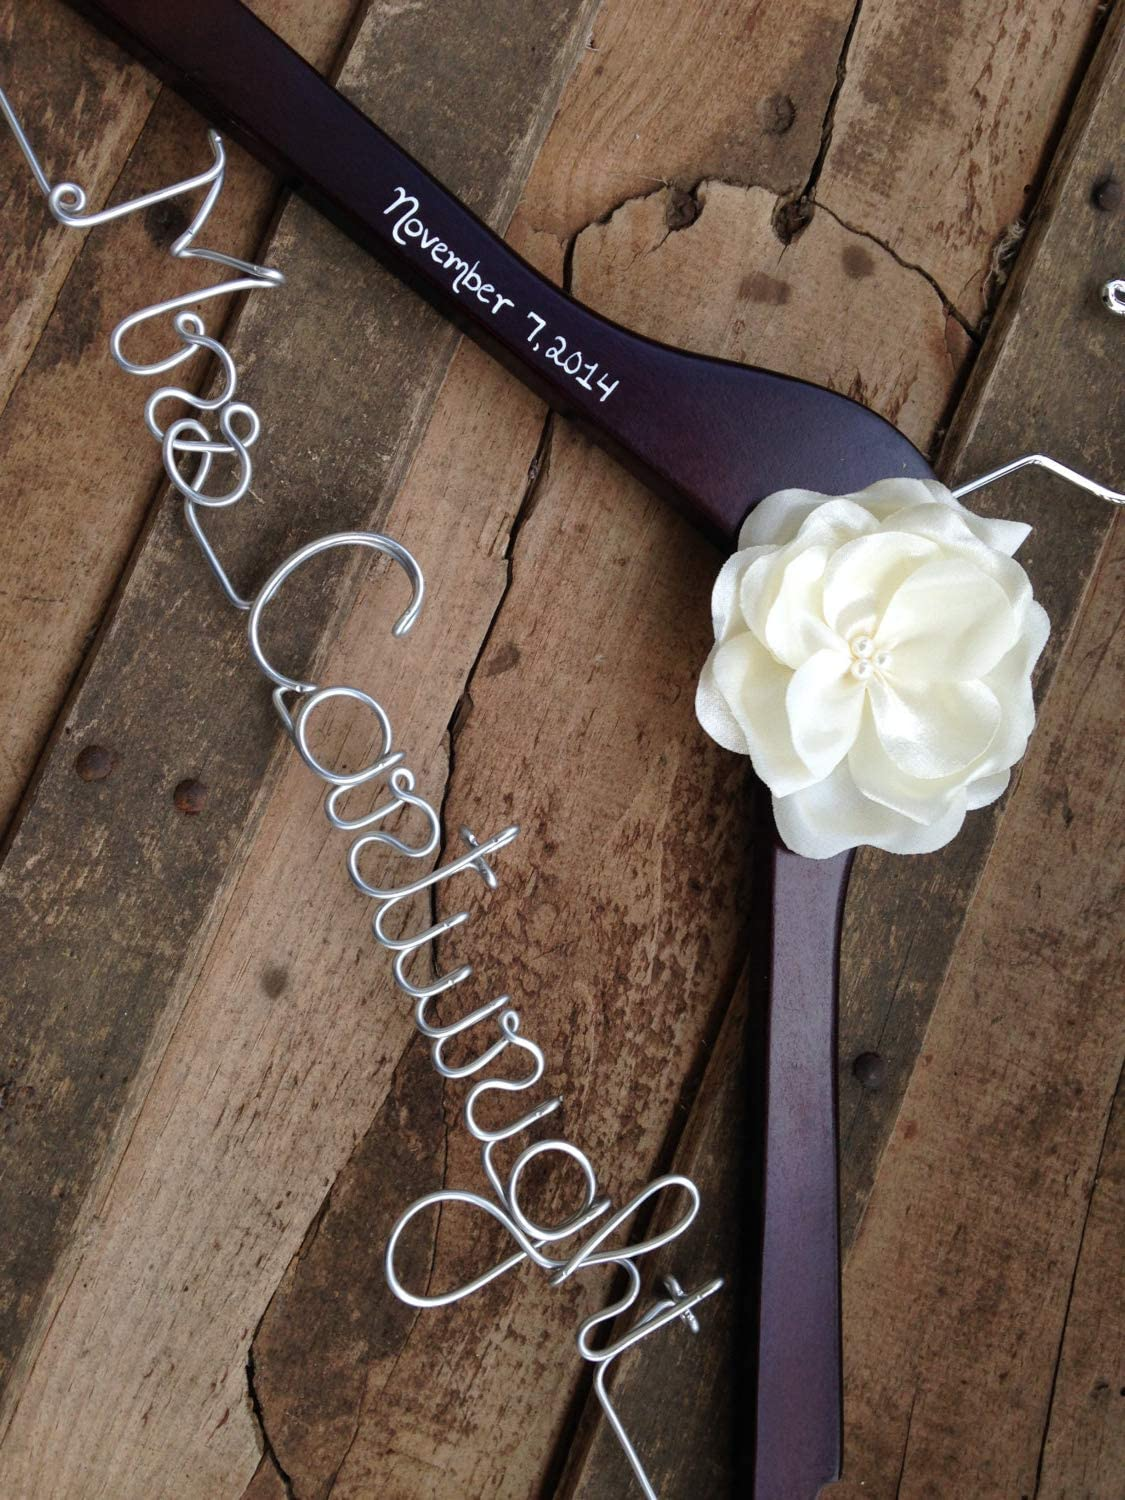 Flowershave357 Personalized Hanger Wedding Dress Hanger Custom Bride to Be Hanger Unique Bridal Shower Gift Engagement Gift Wedding Gifts